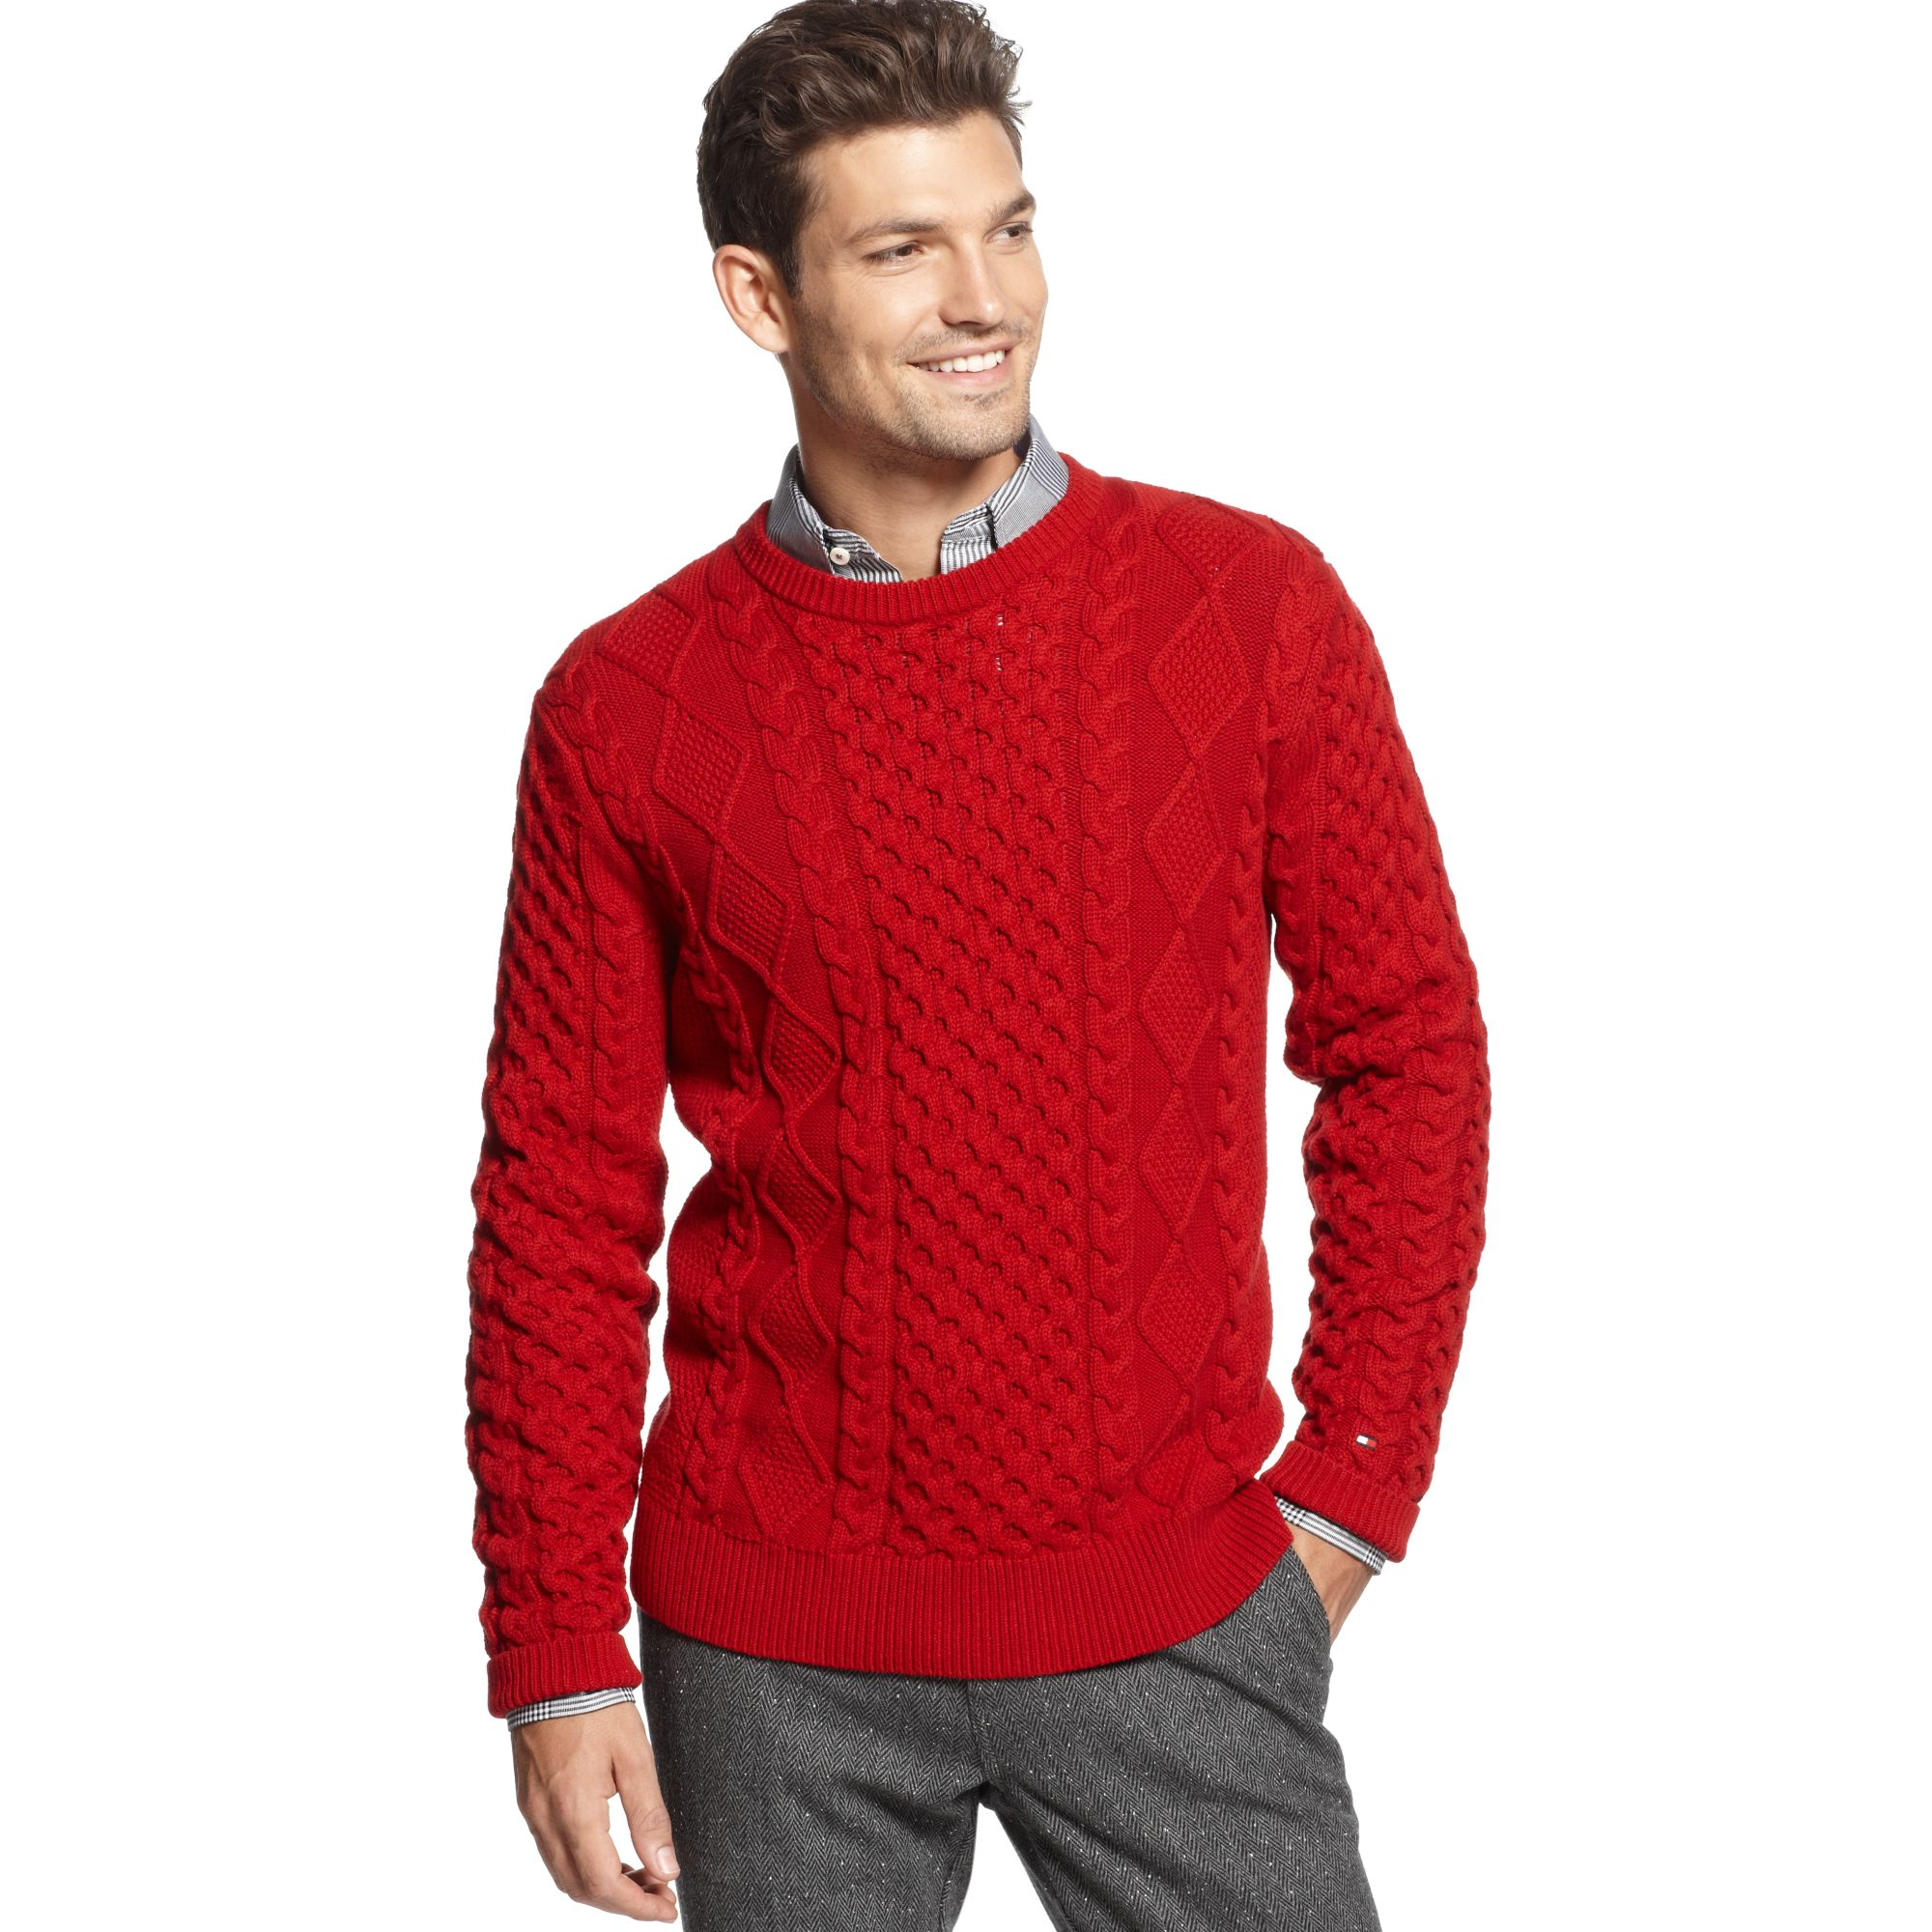 b80f0658f03503 Tommy Hilfiger knitwear crew neck in Red for Men - Lyst